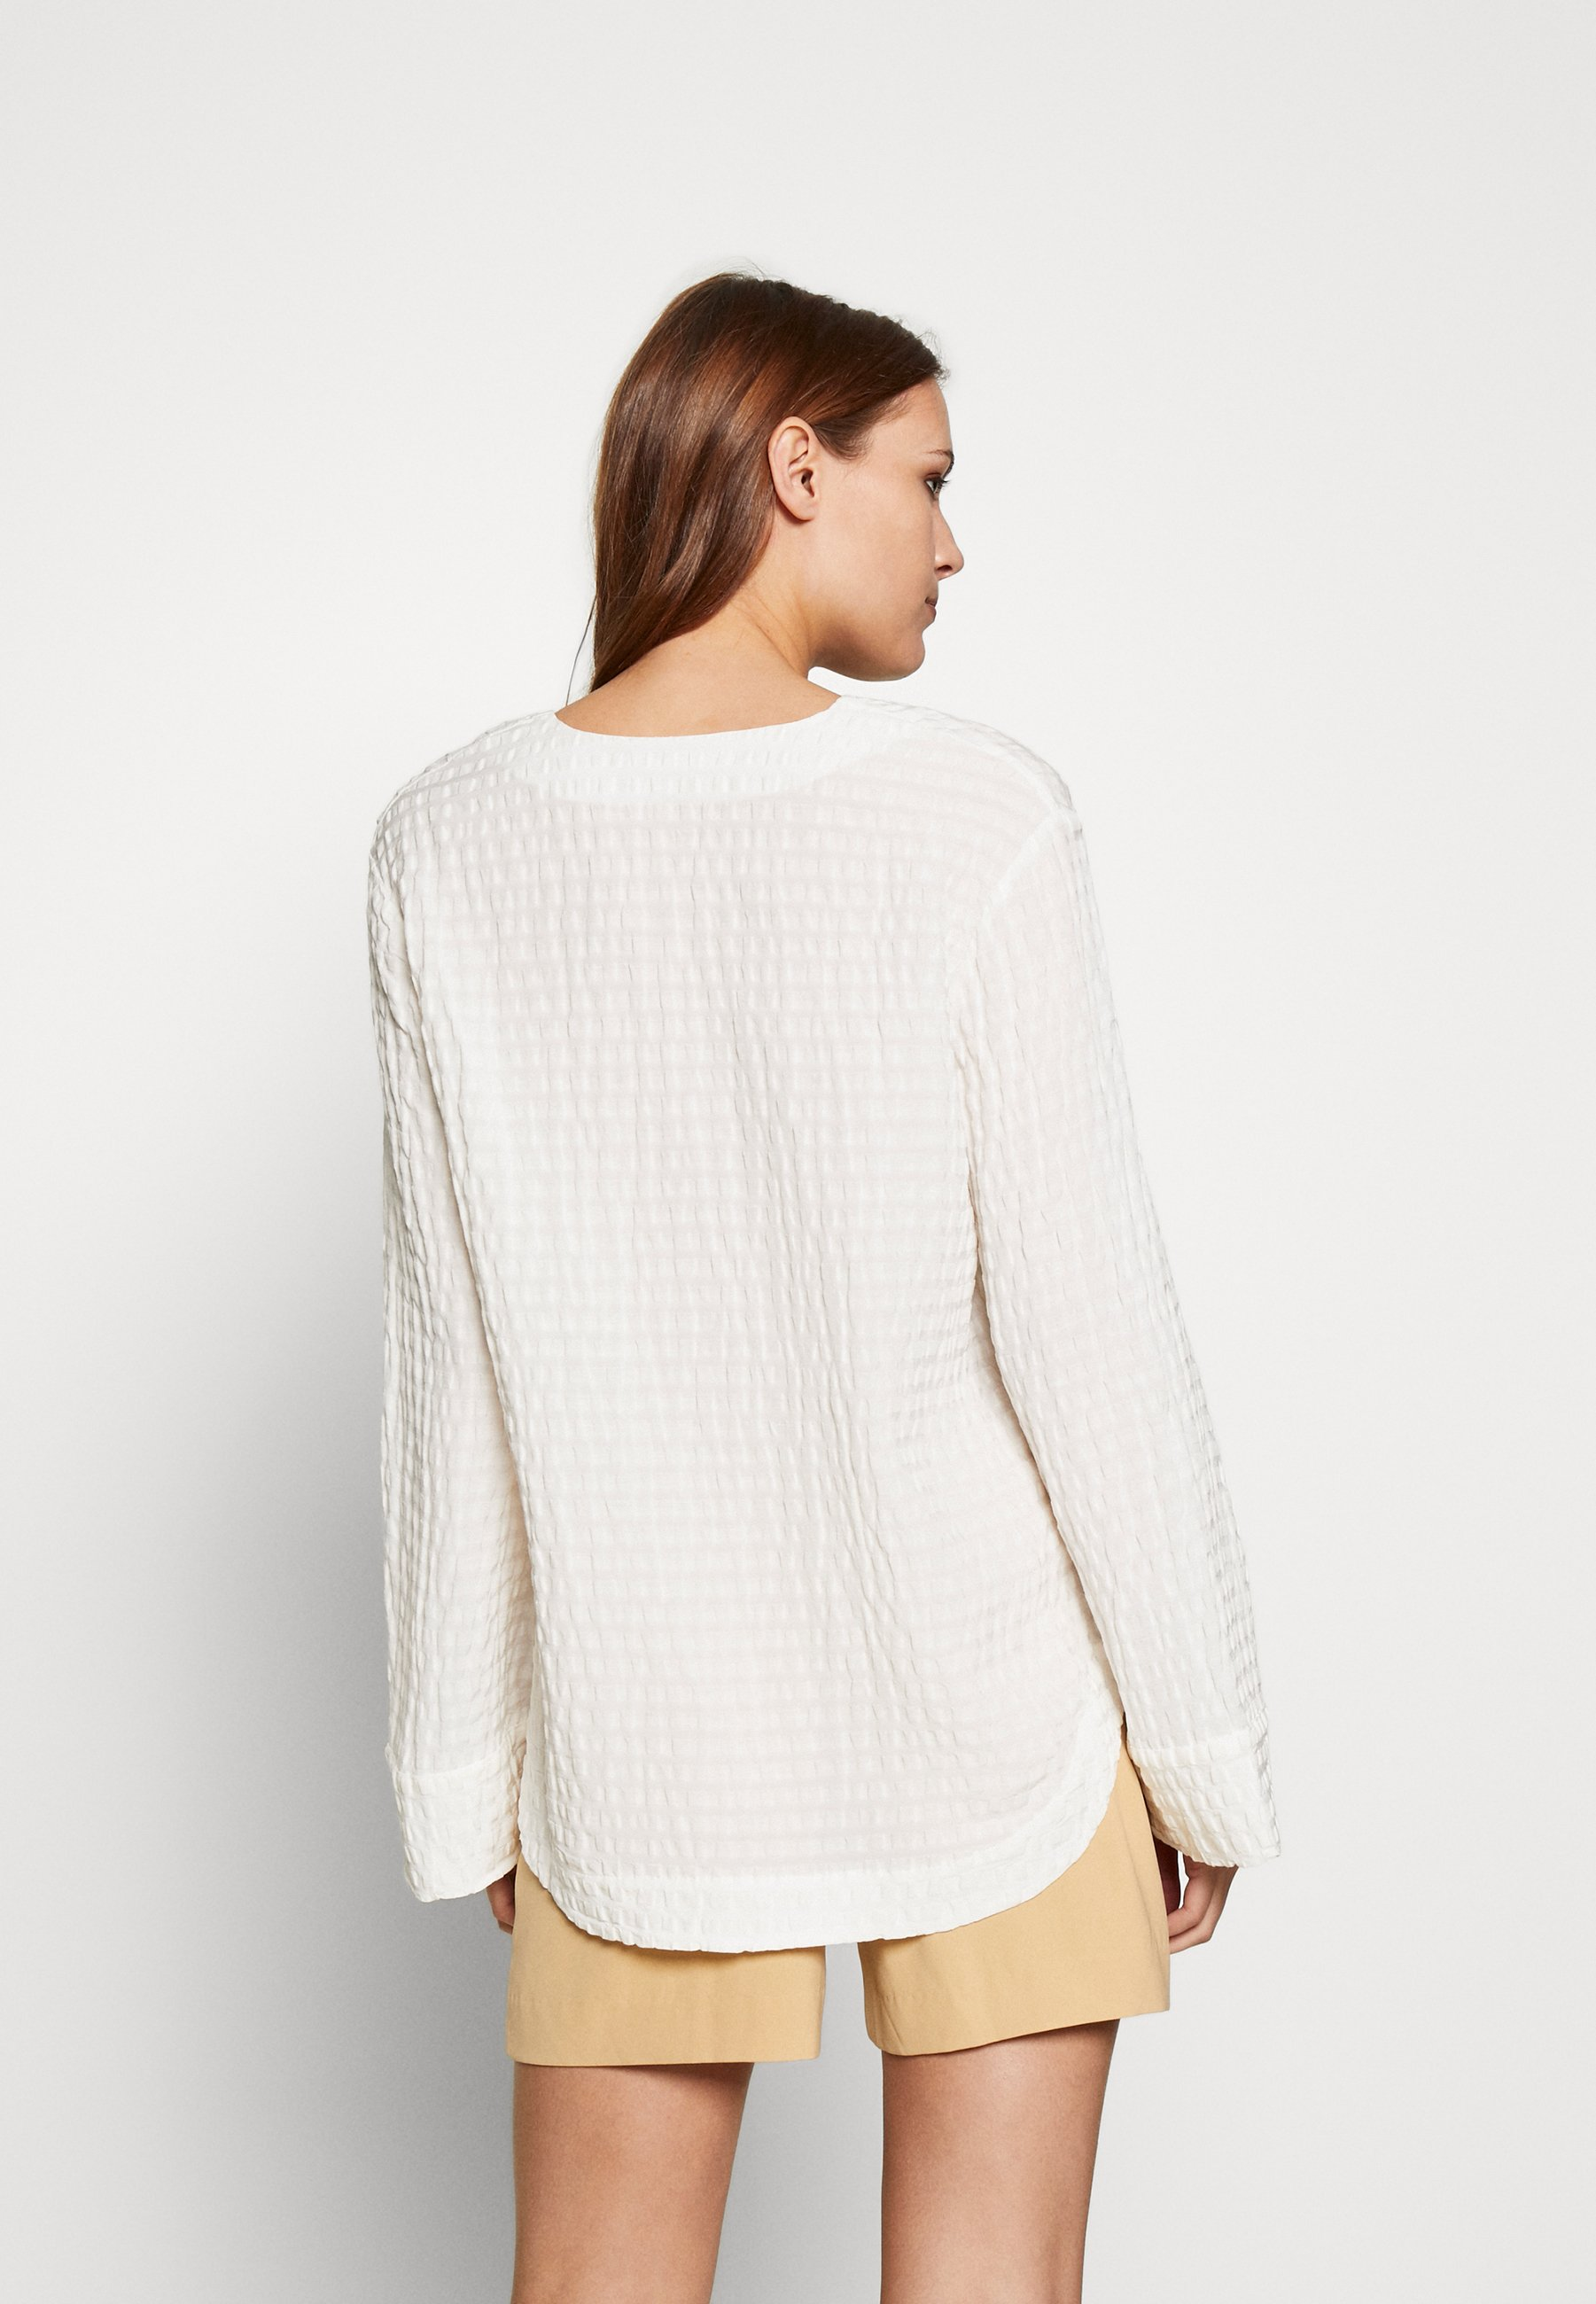 Samsøe Juta - Blouse Warm White